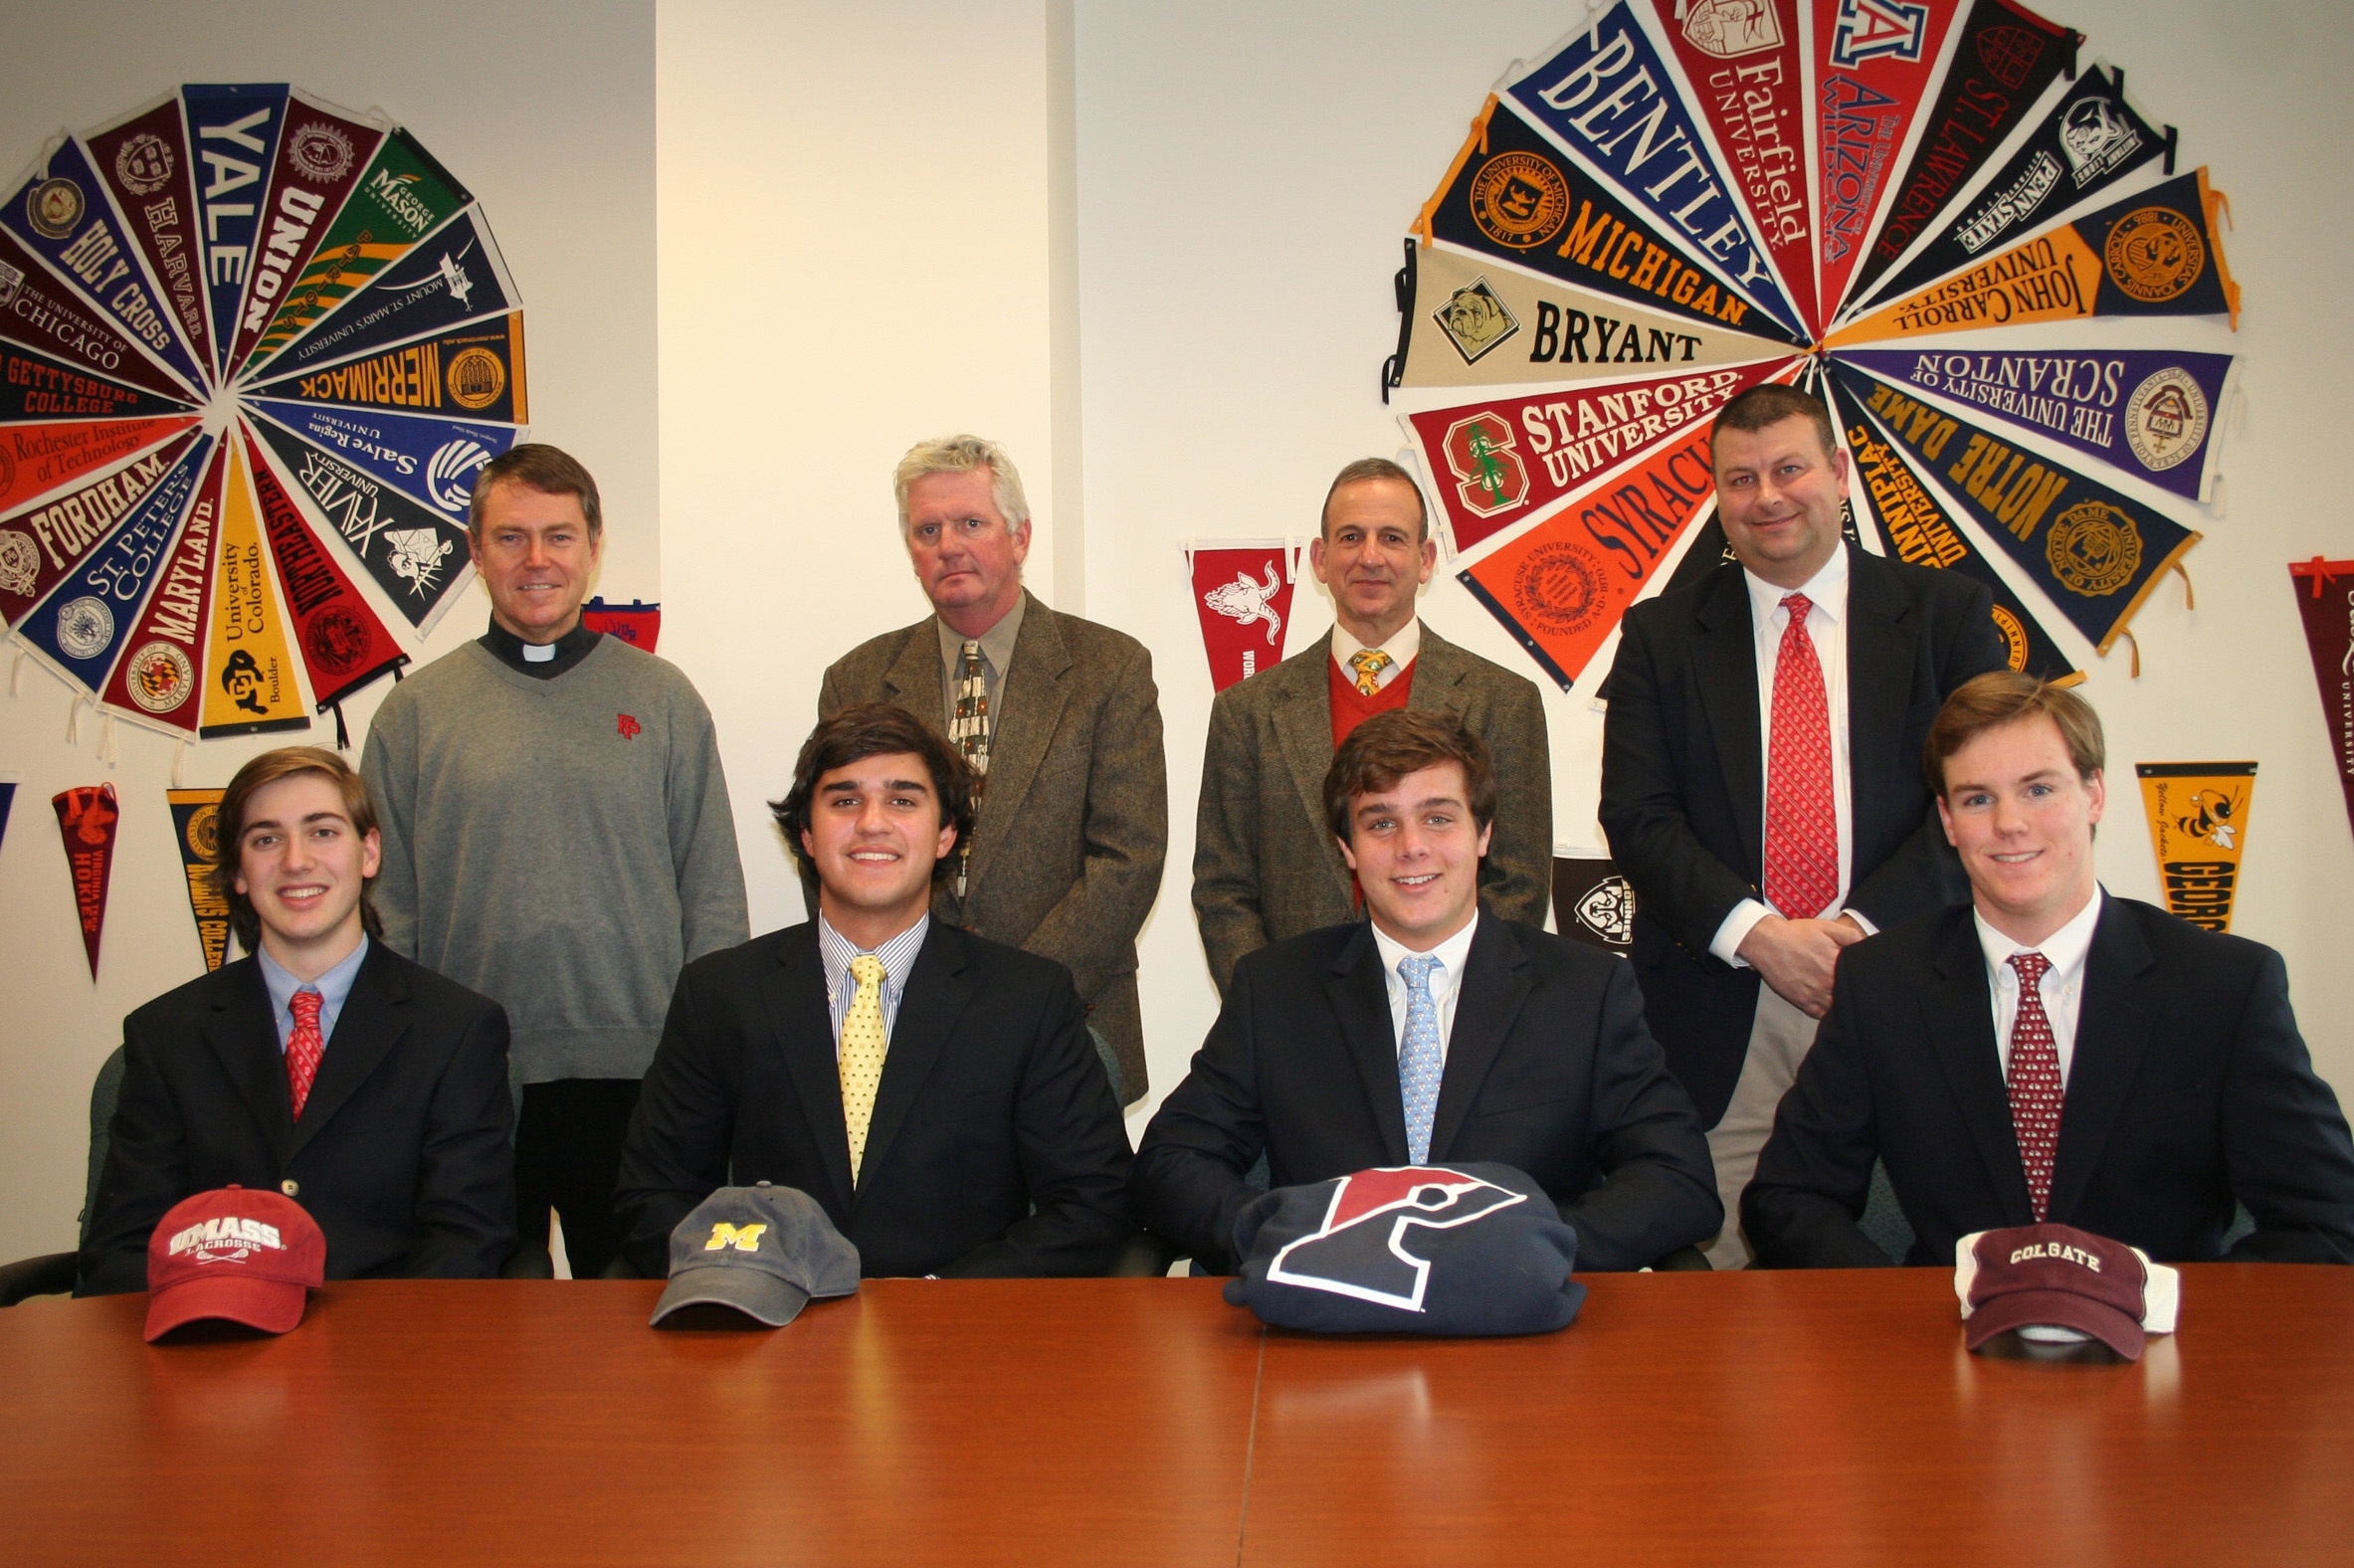 Fairfield Prep lacrosse players (front, left to right) James Marusi, Andrew Hatton, Kevin Brown and Strecker Backe recently made their college choices. They are show with (back, from left) Rev. John Hanwell, coach Chris Smalkais and AD Steve Donahue.